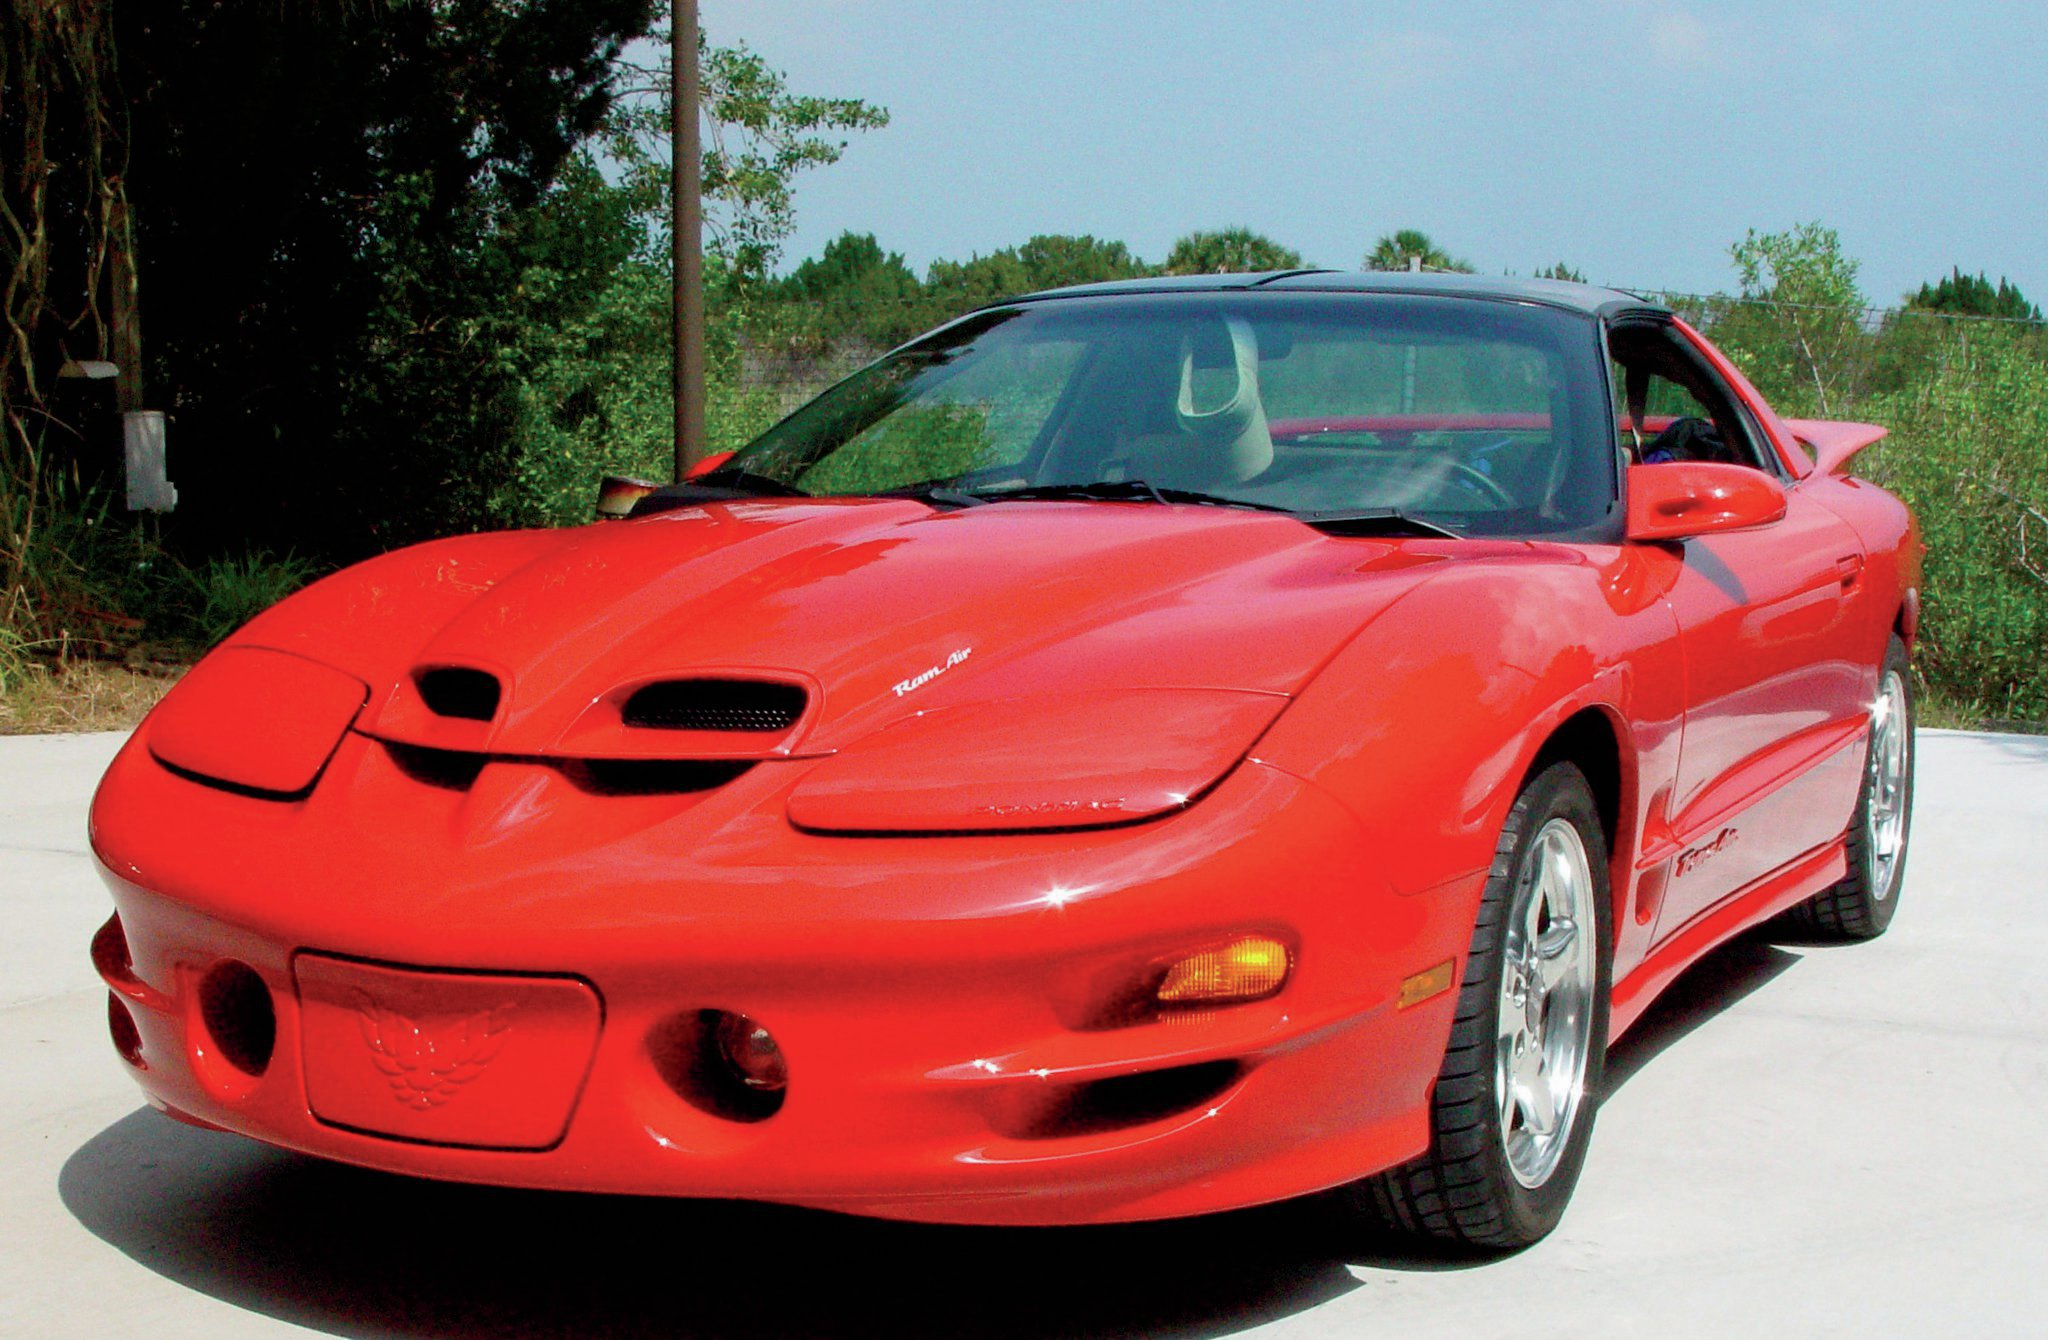 In 1997, John was named GM's chief engineer for the F-body. He made many chassis and exhaust improvements to them during this assignment.